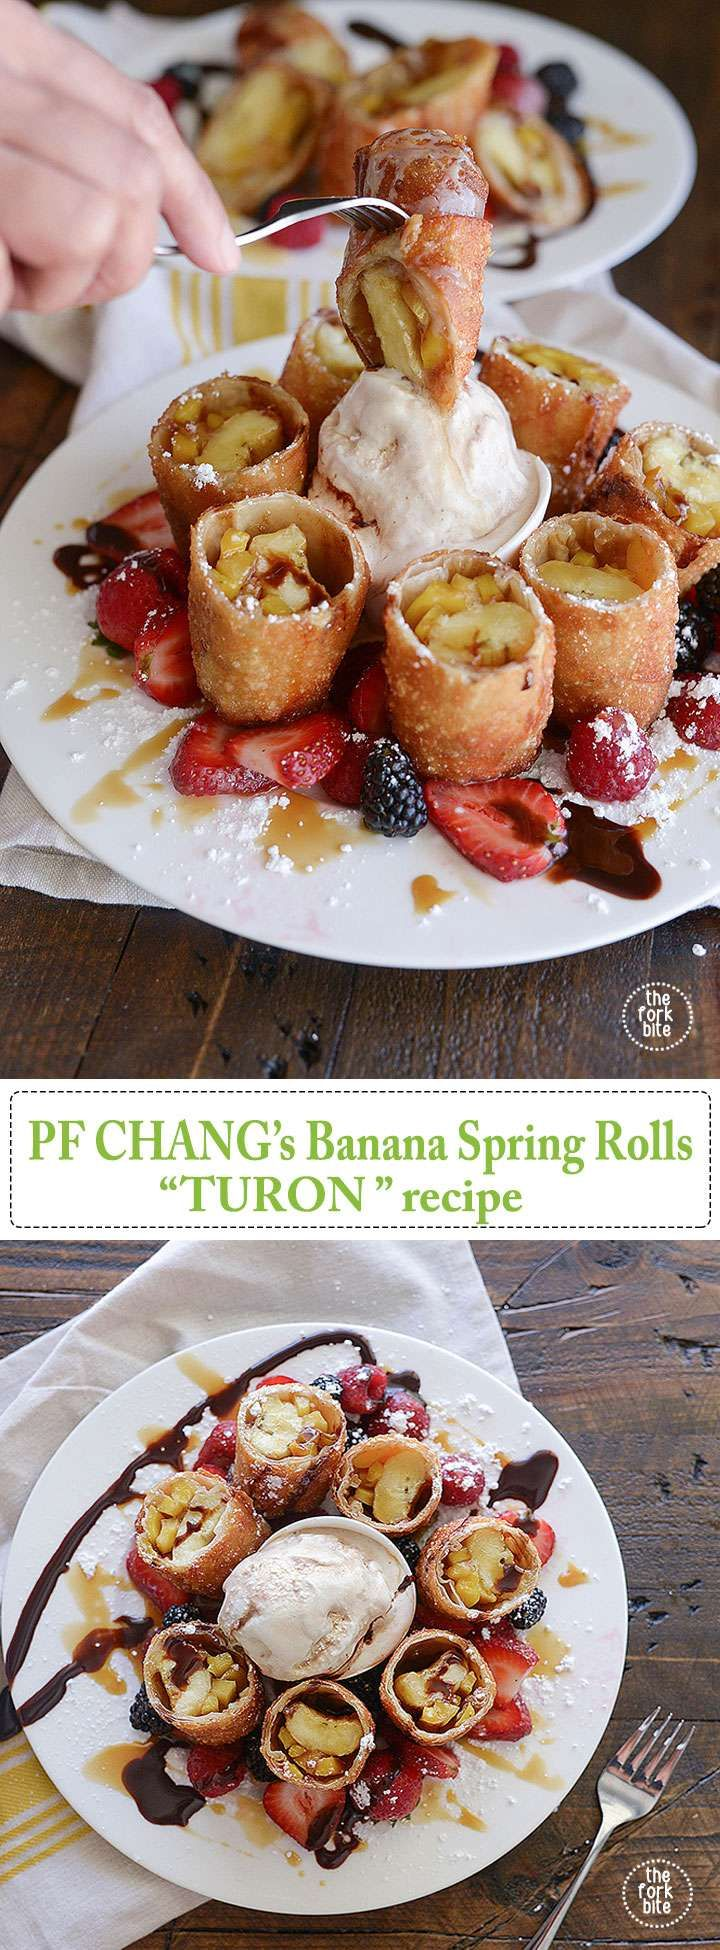 PF Changs Banana Spring Rolls Turon Recipe